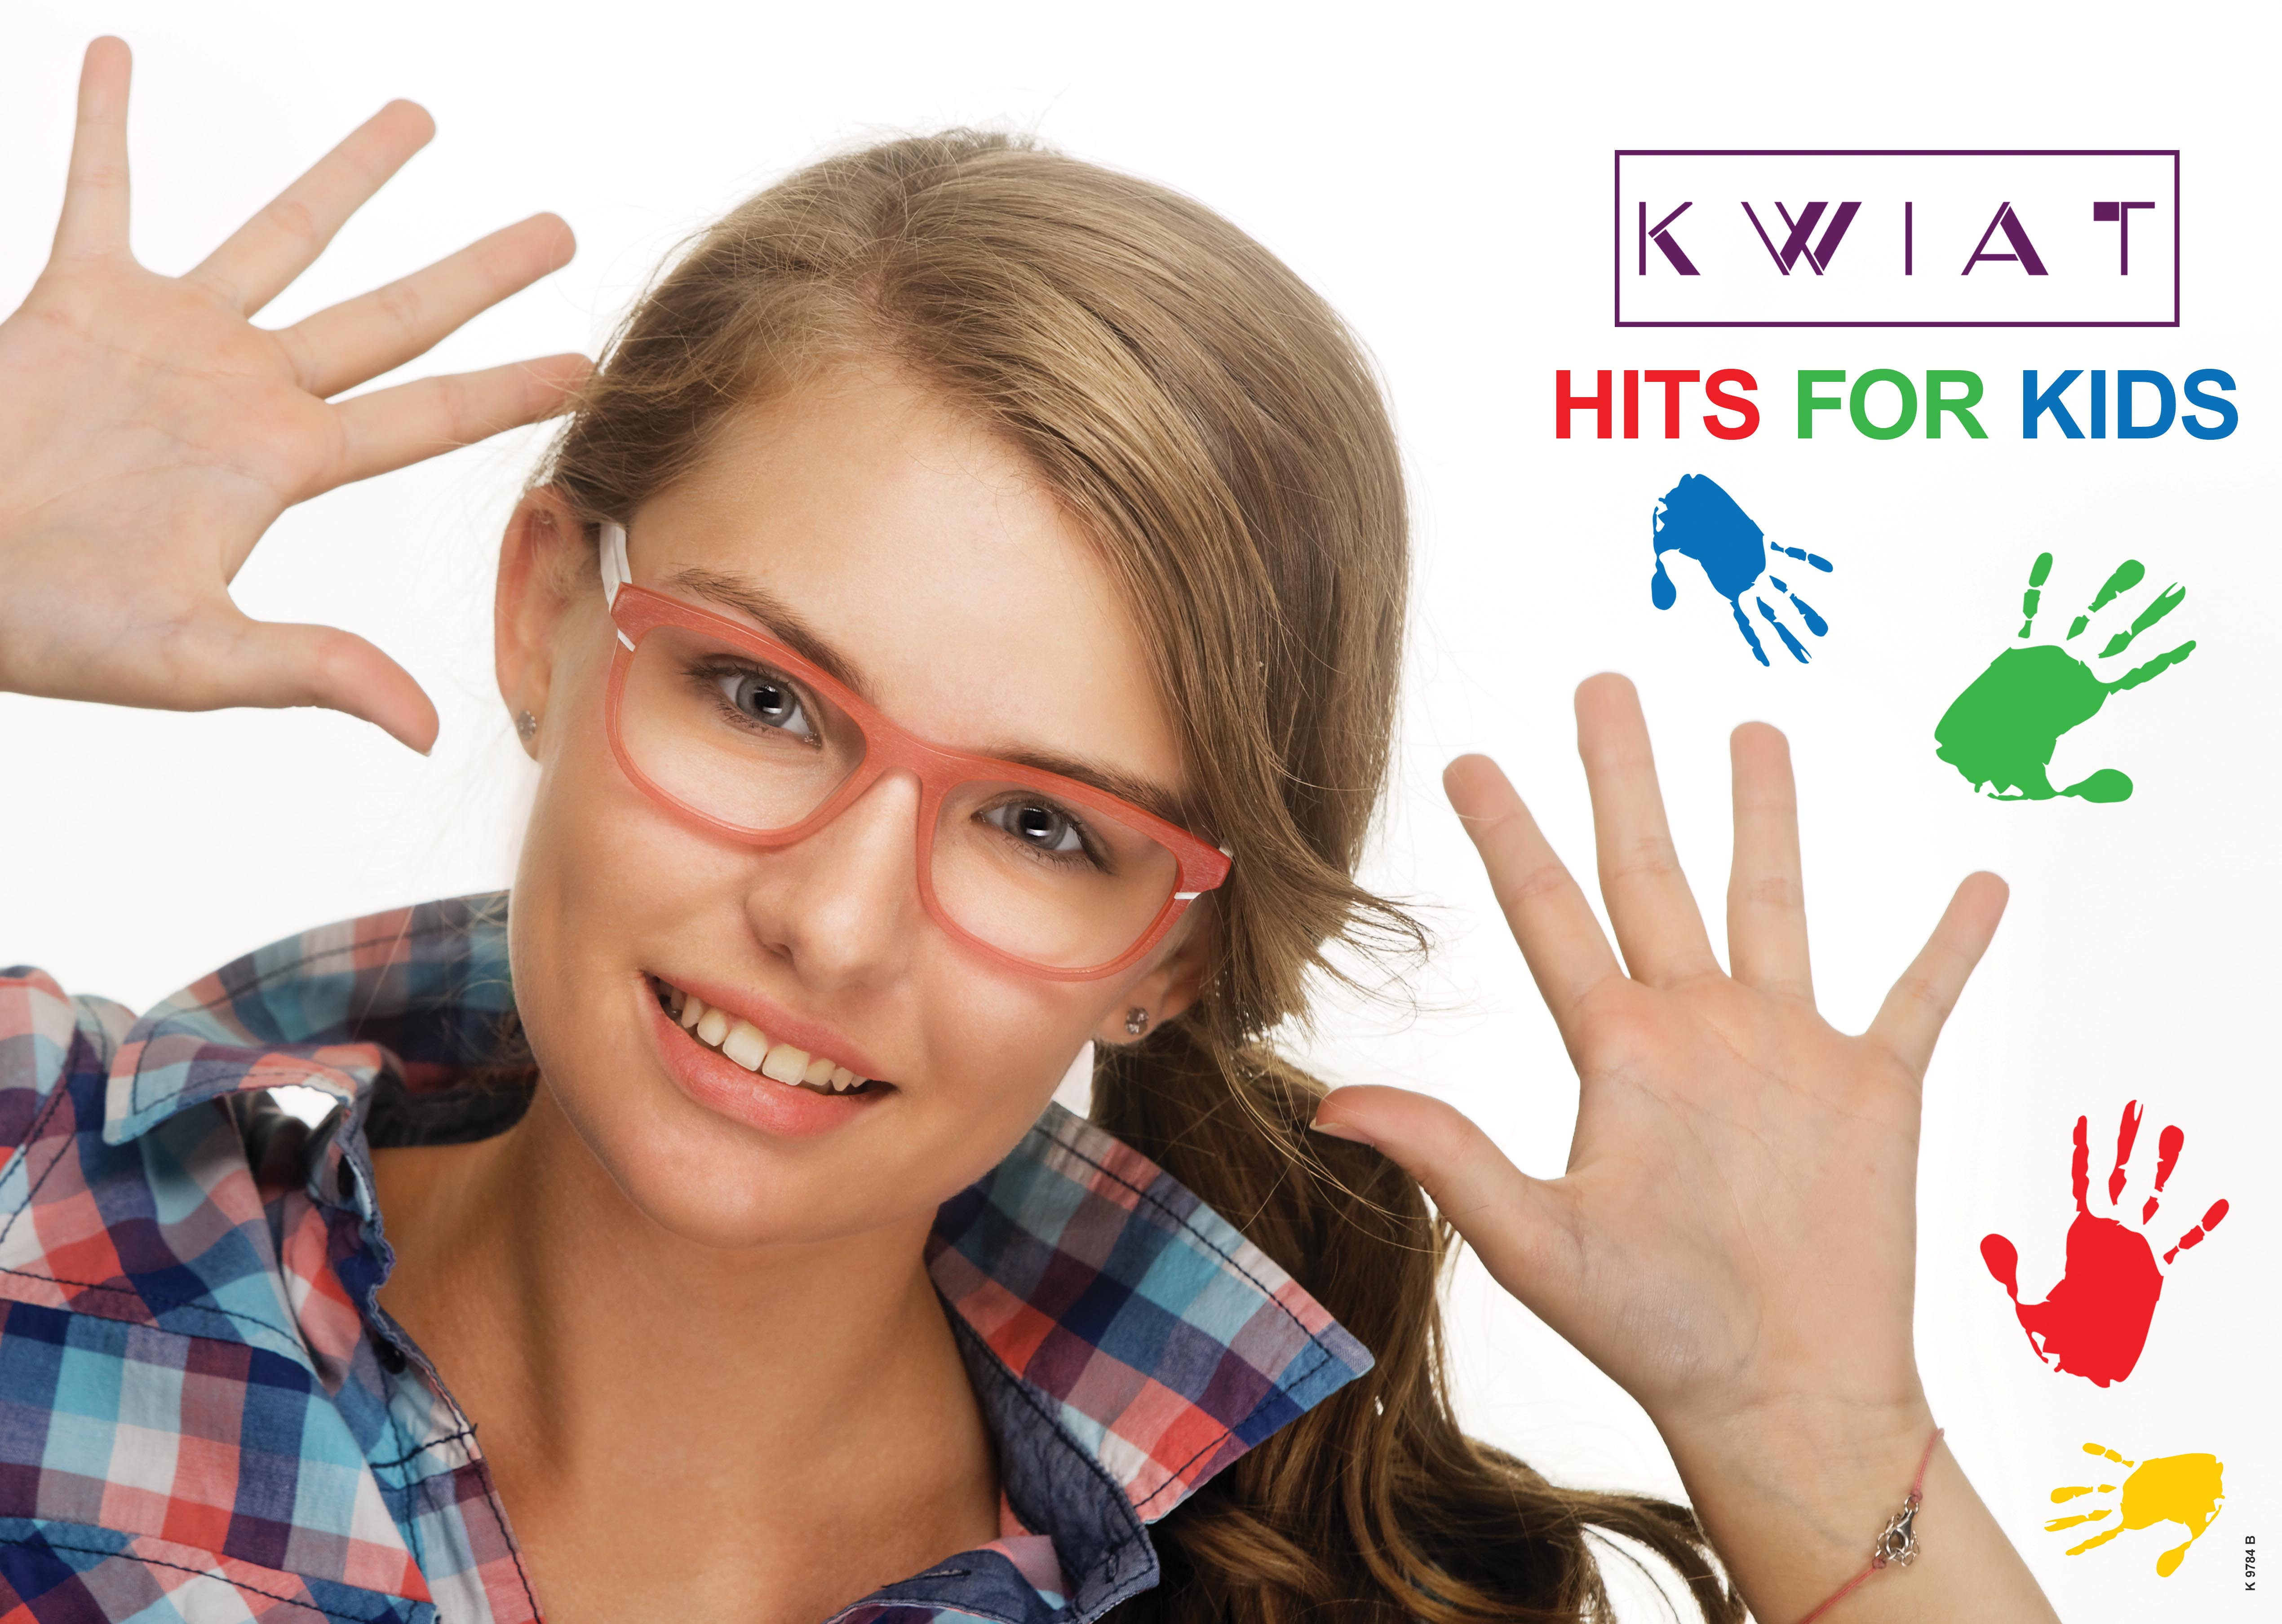 1_KWIAT HITS FOR KIDS_K 9784 B